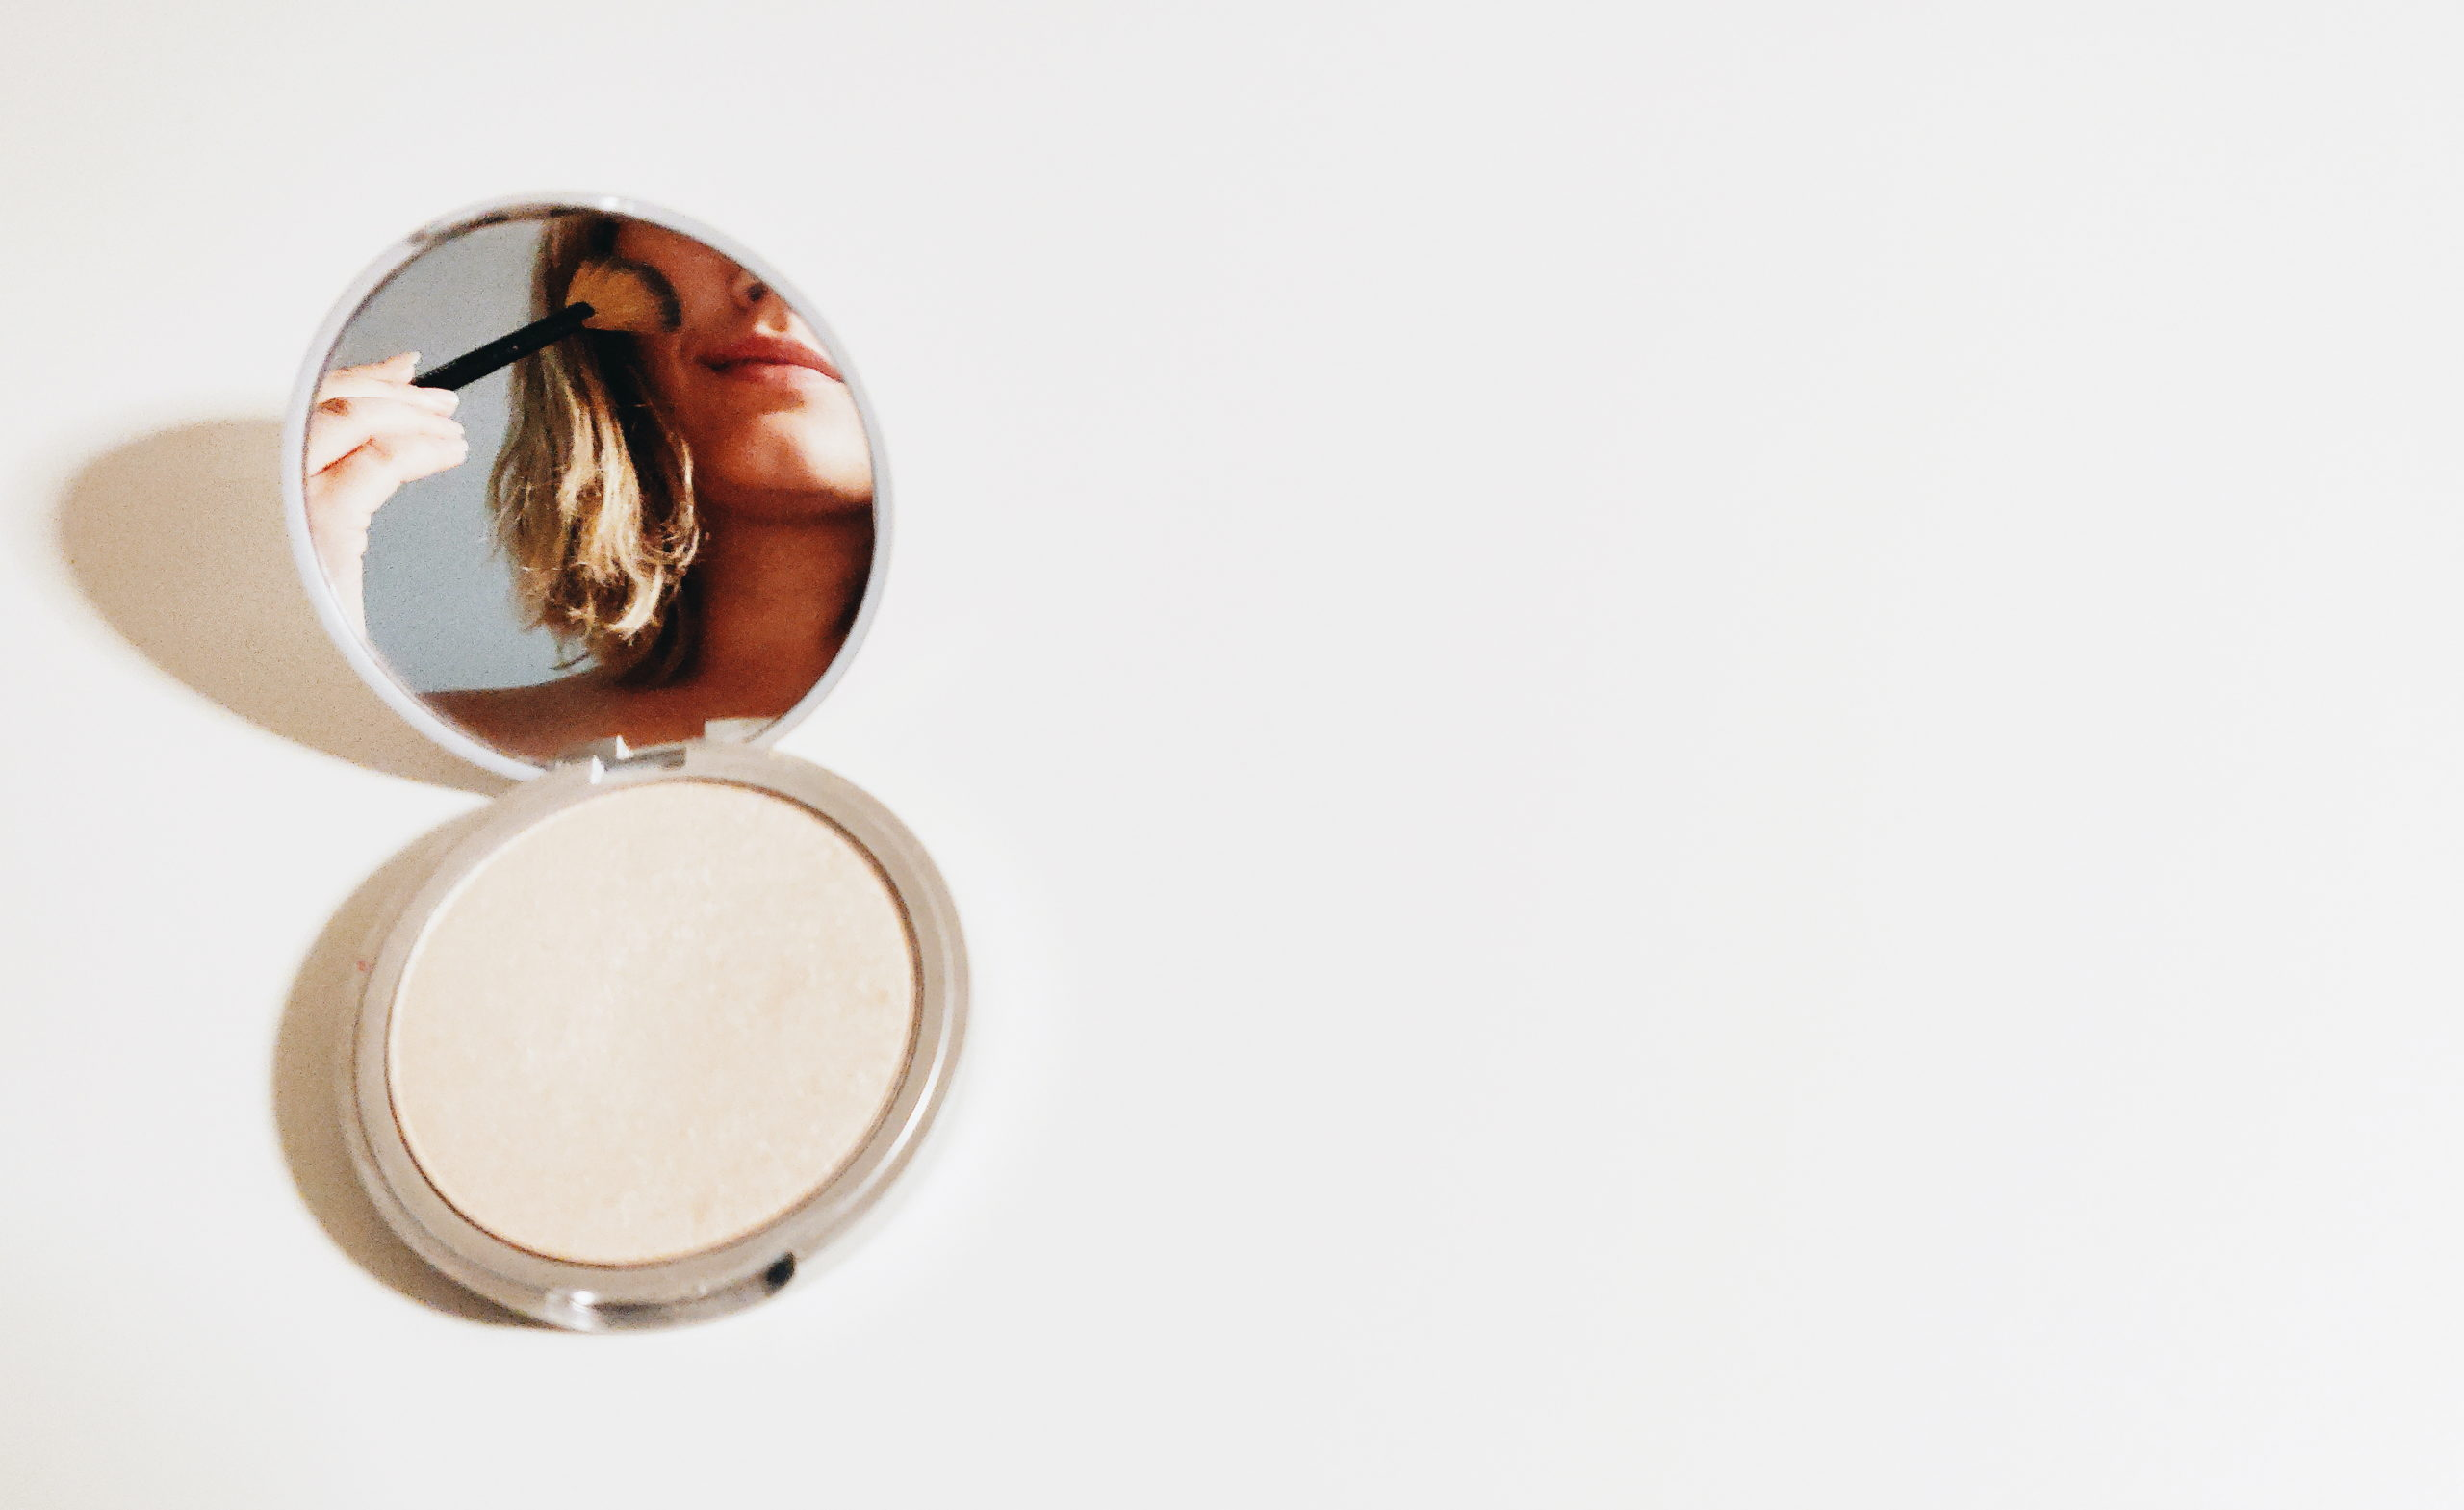 Sustainable beauty is more complex than you'd think